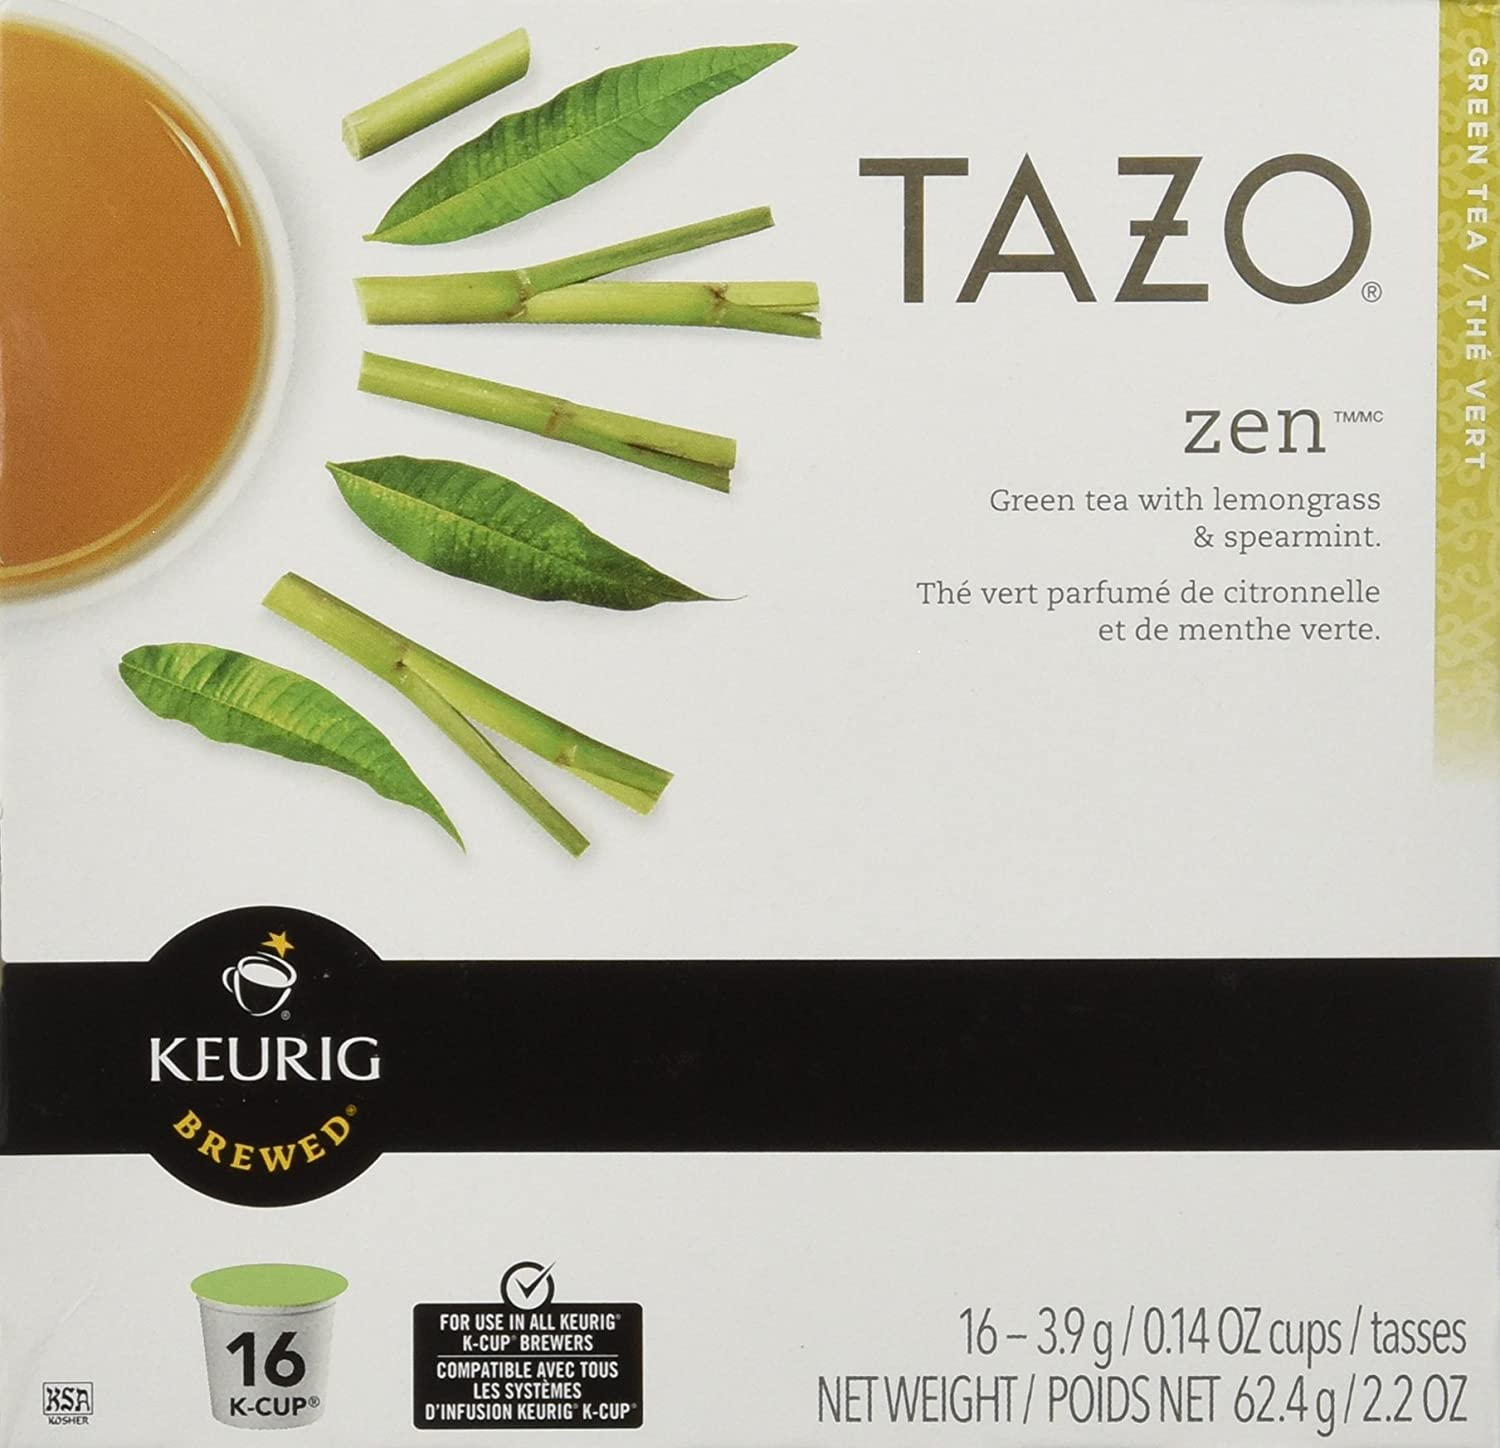 Keurig 100% quality warranty Tazo Zen Tea 16-Count San Antonio Mall Brewers 2 for K-Cups Pack